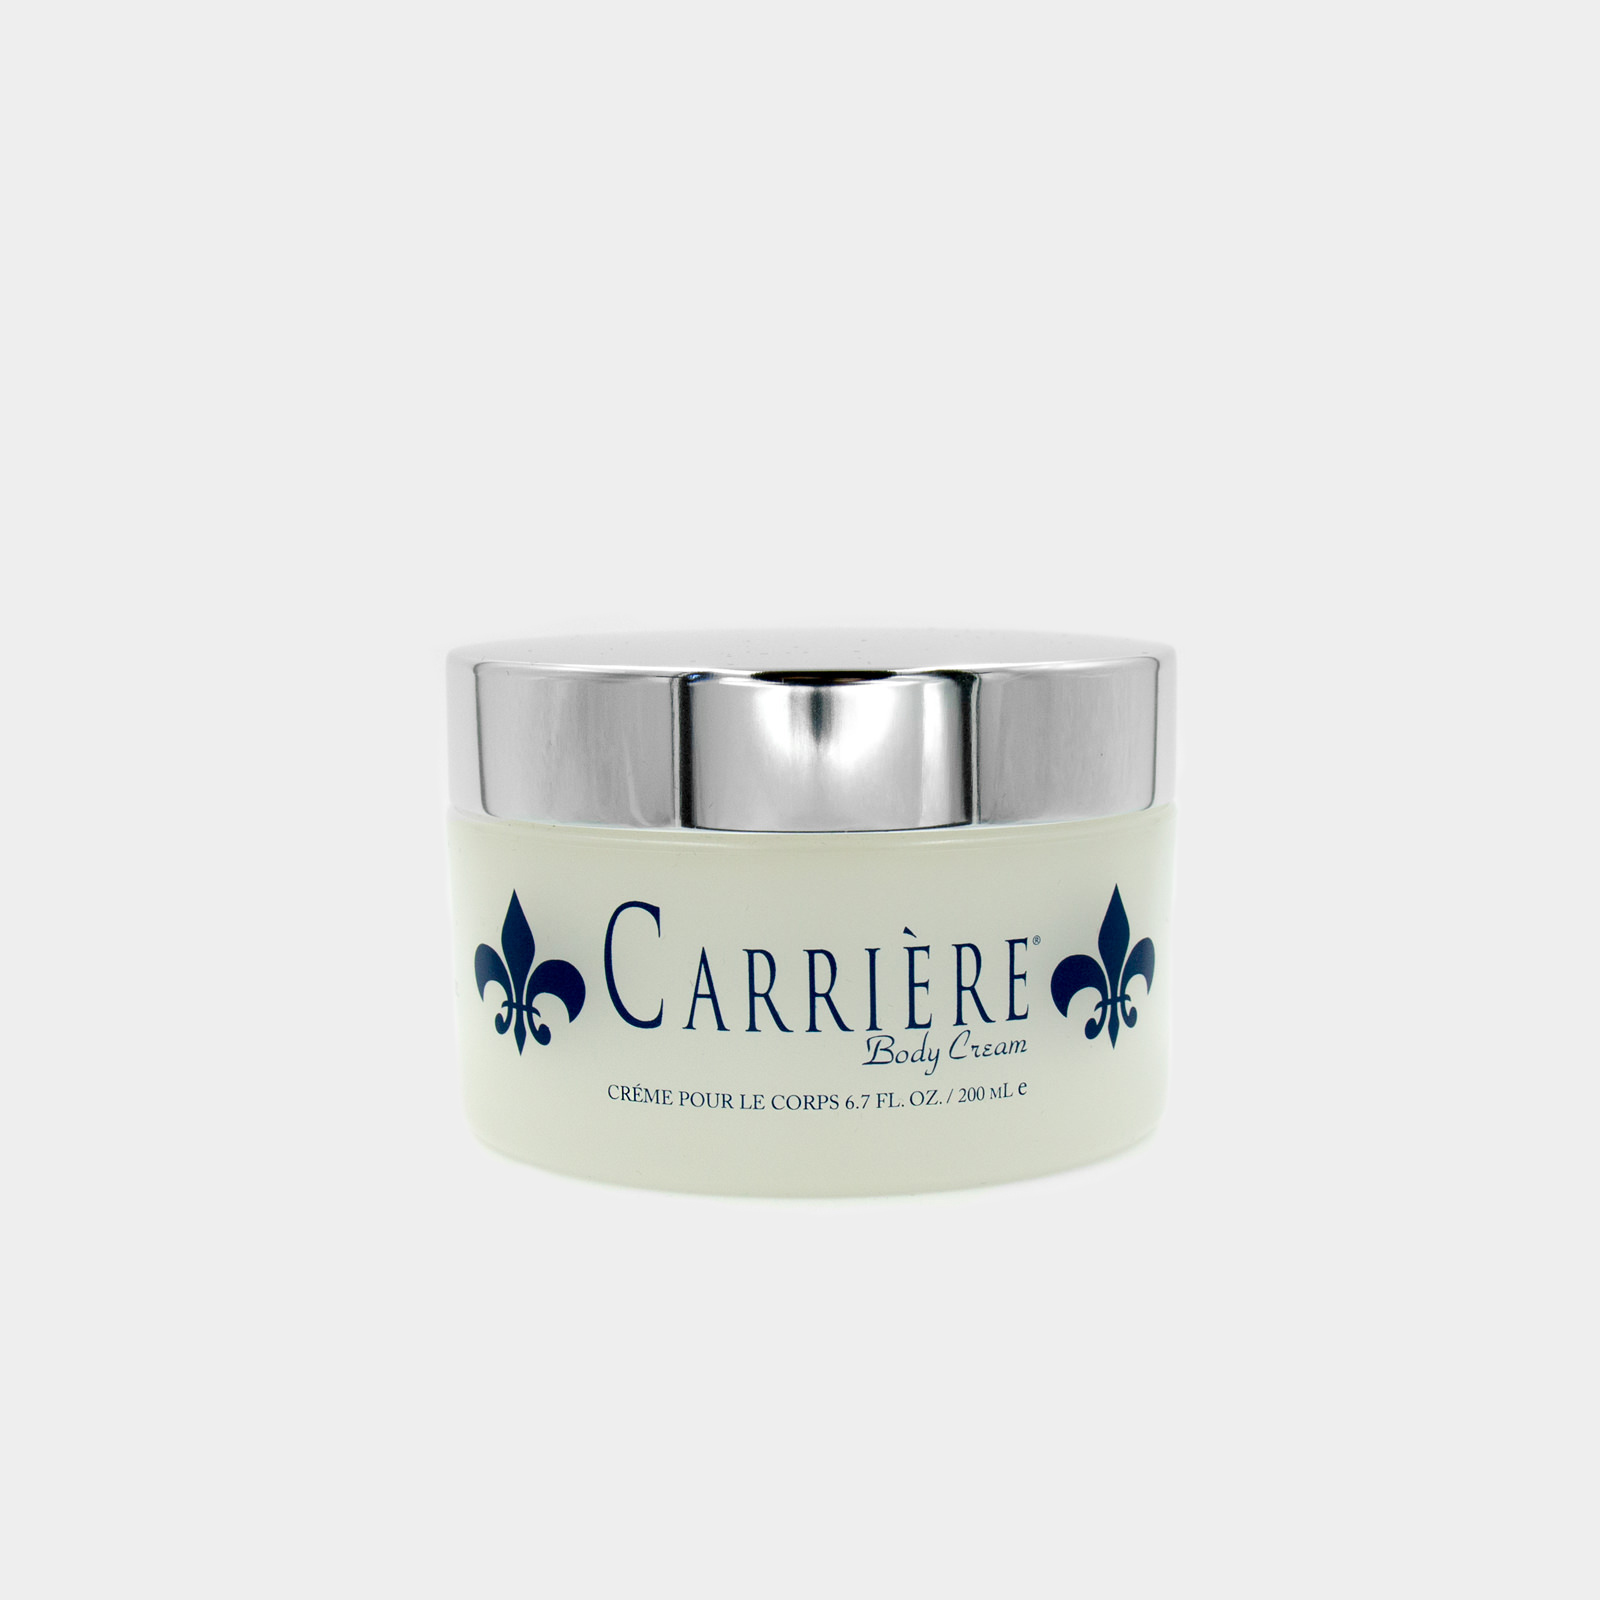 Carriere Body Cream